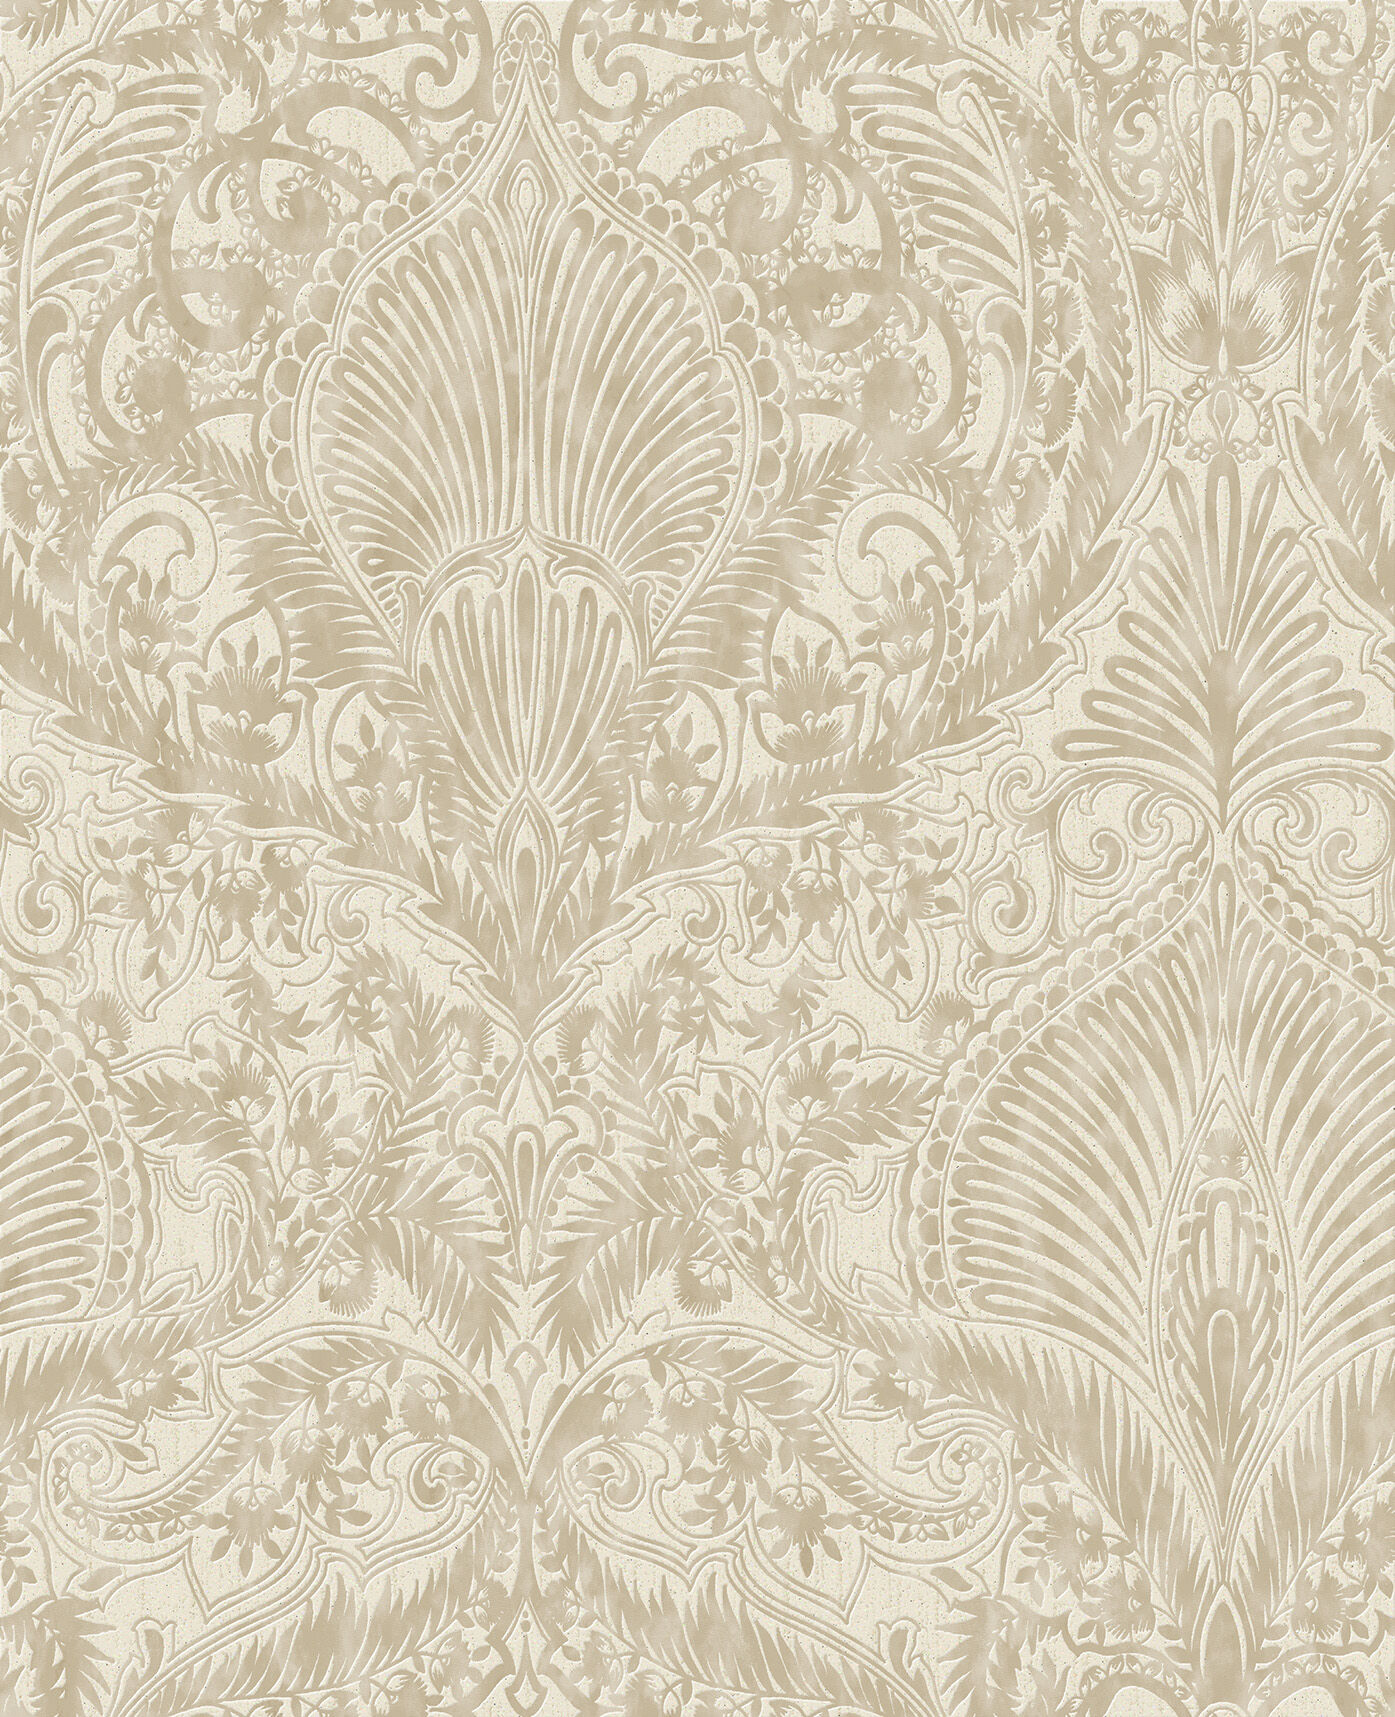 Burlesque Cream and Gold Wallpaper Ornate Wallpaper